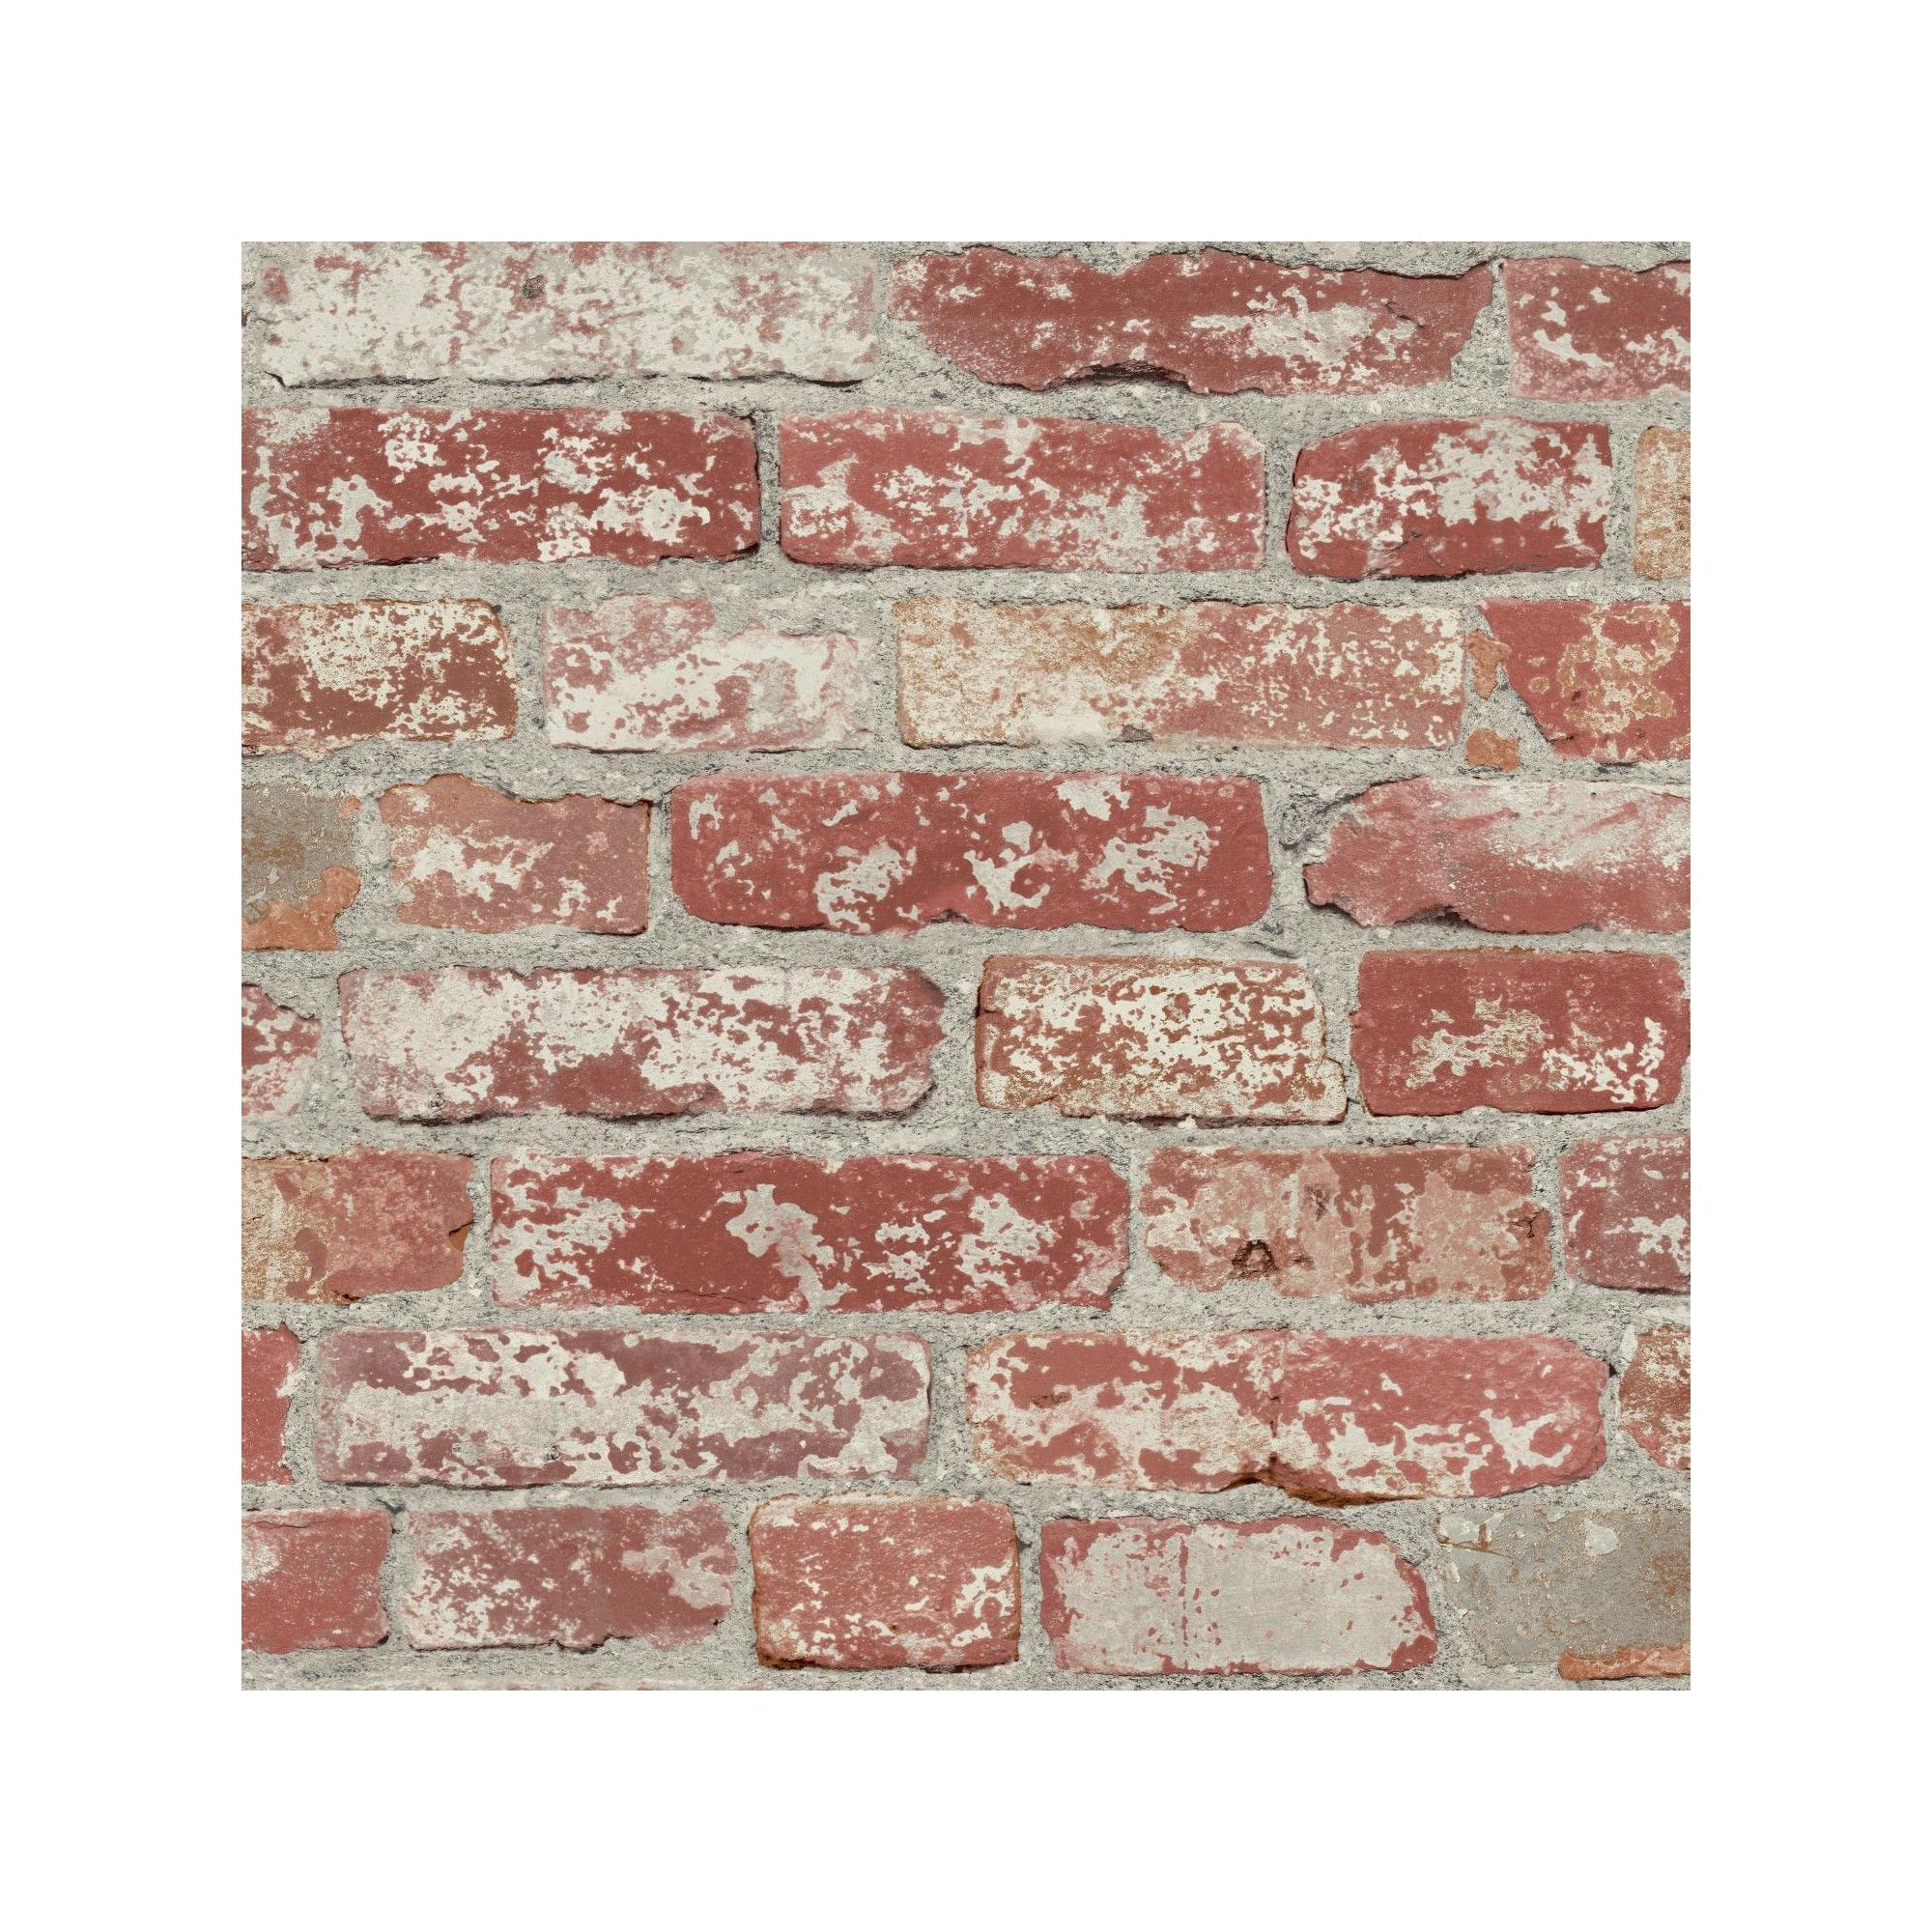 Vinyl Steinoptik Wand Stuccoed Brick Peel And Stick Wallpaper Dark Red Roommates